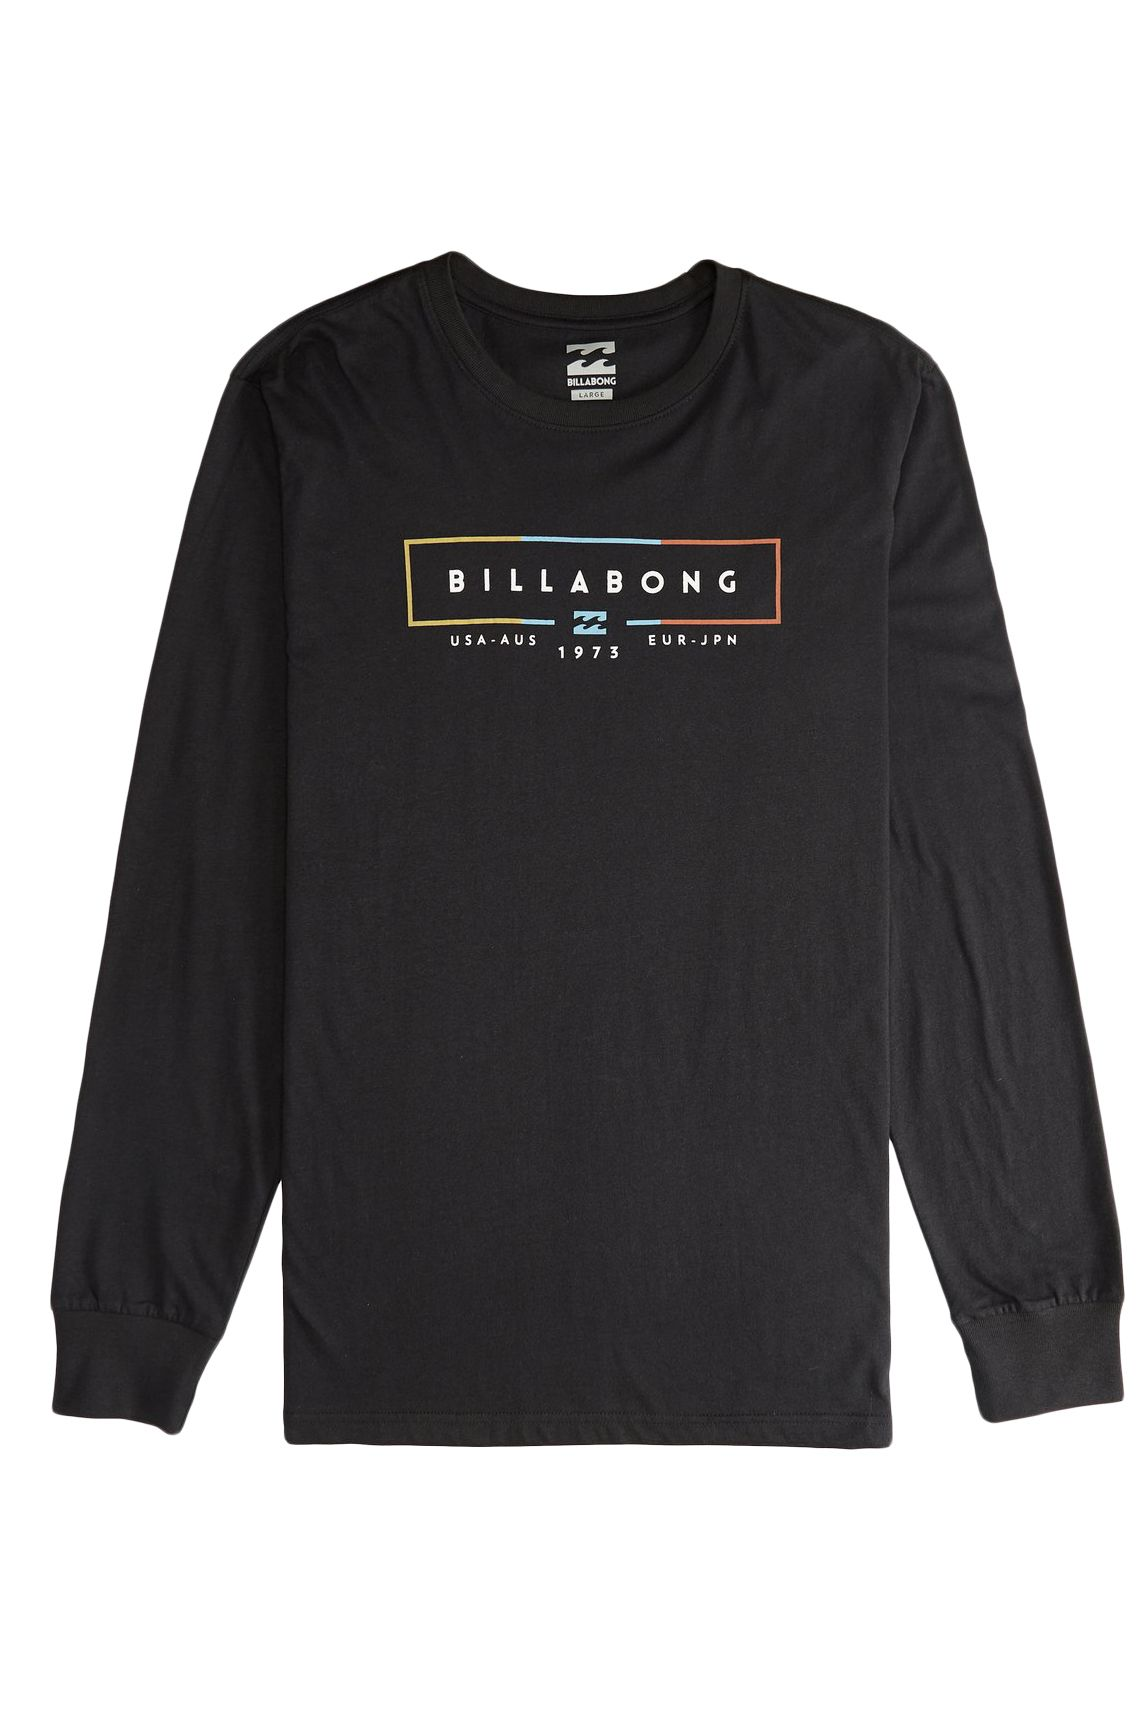 L-Sleeve Billabong UNITY Black